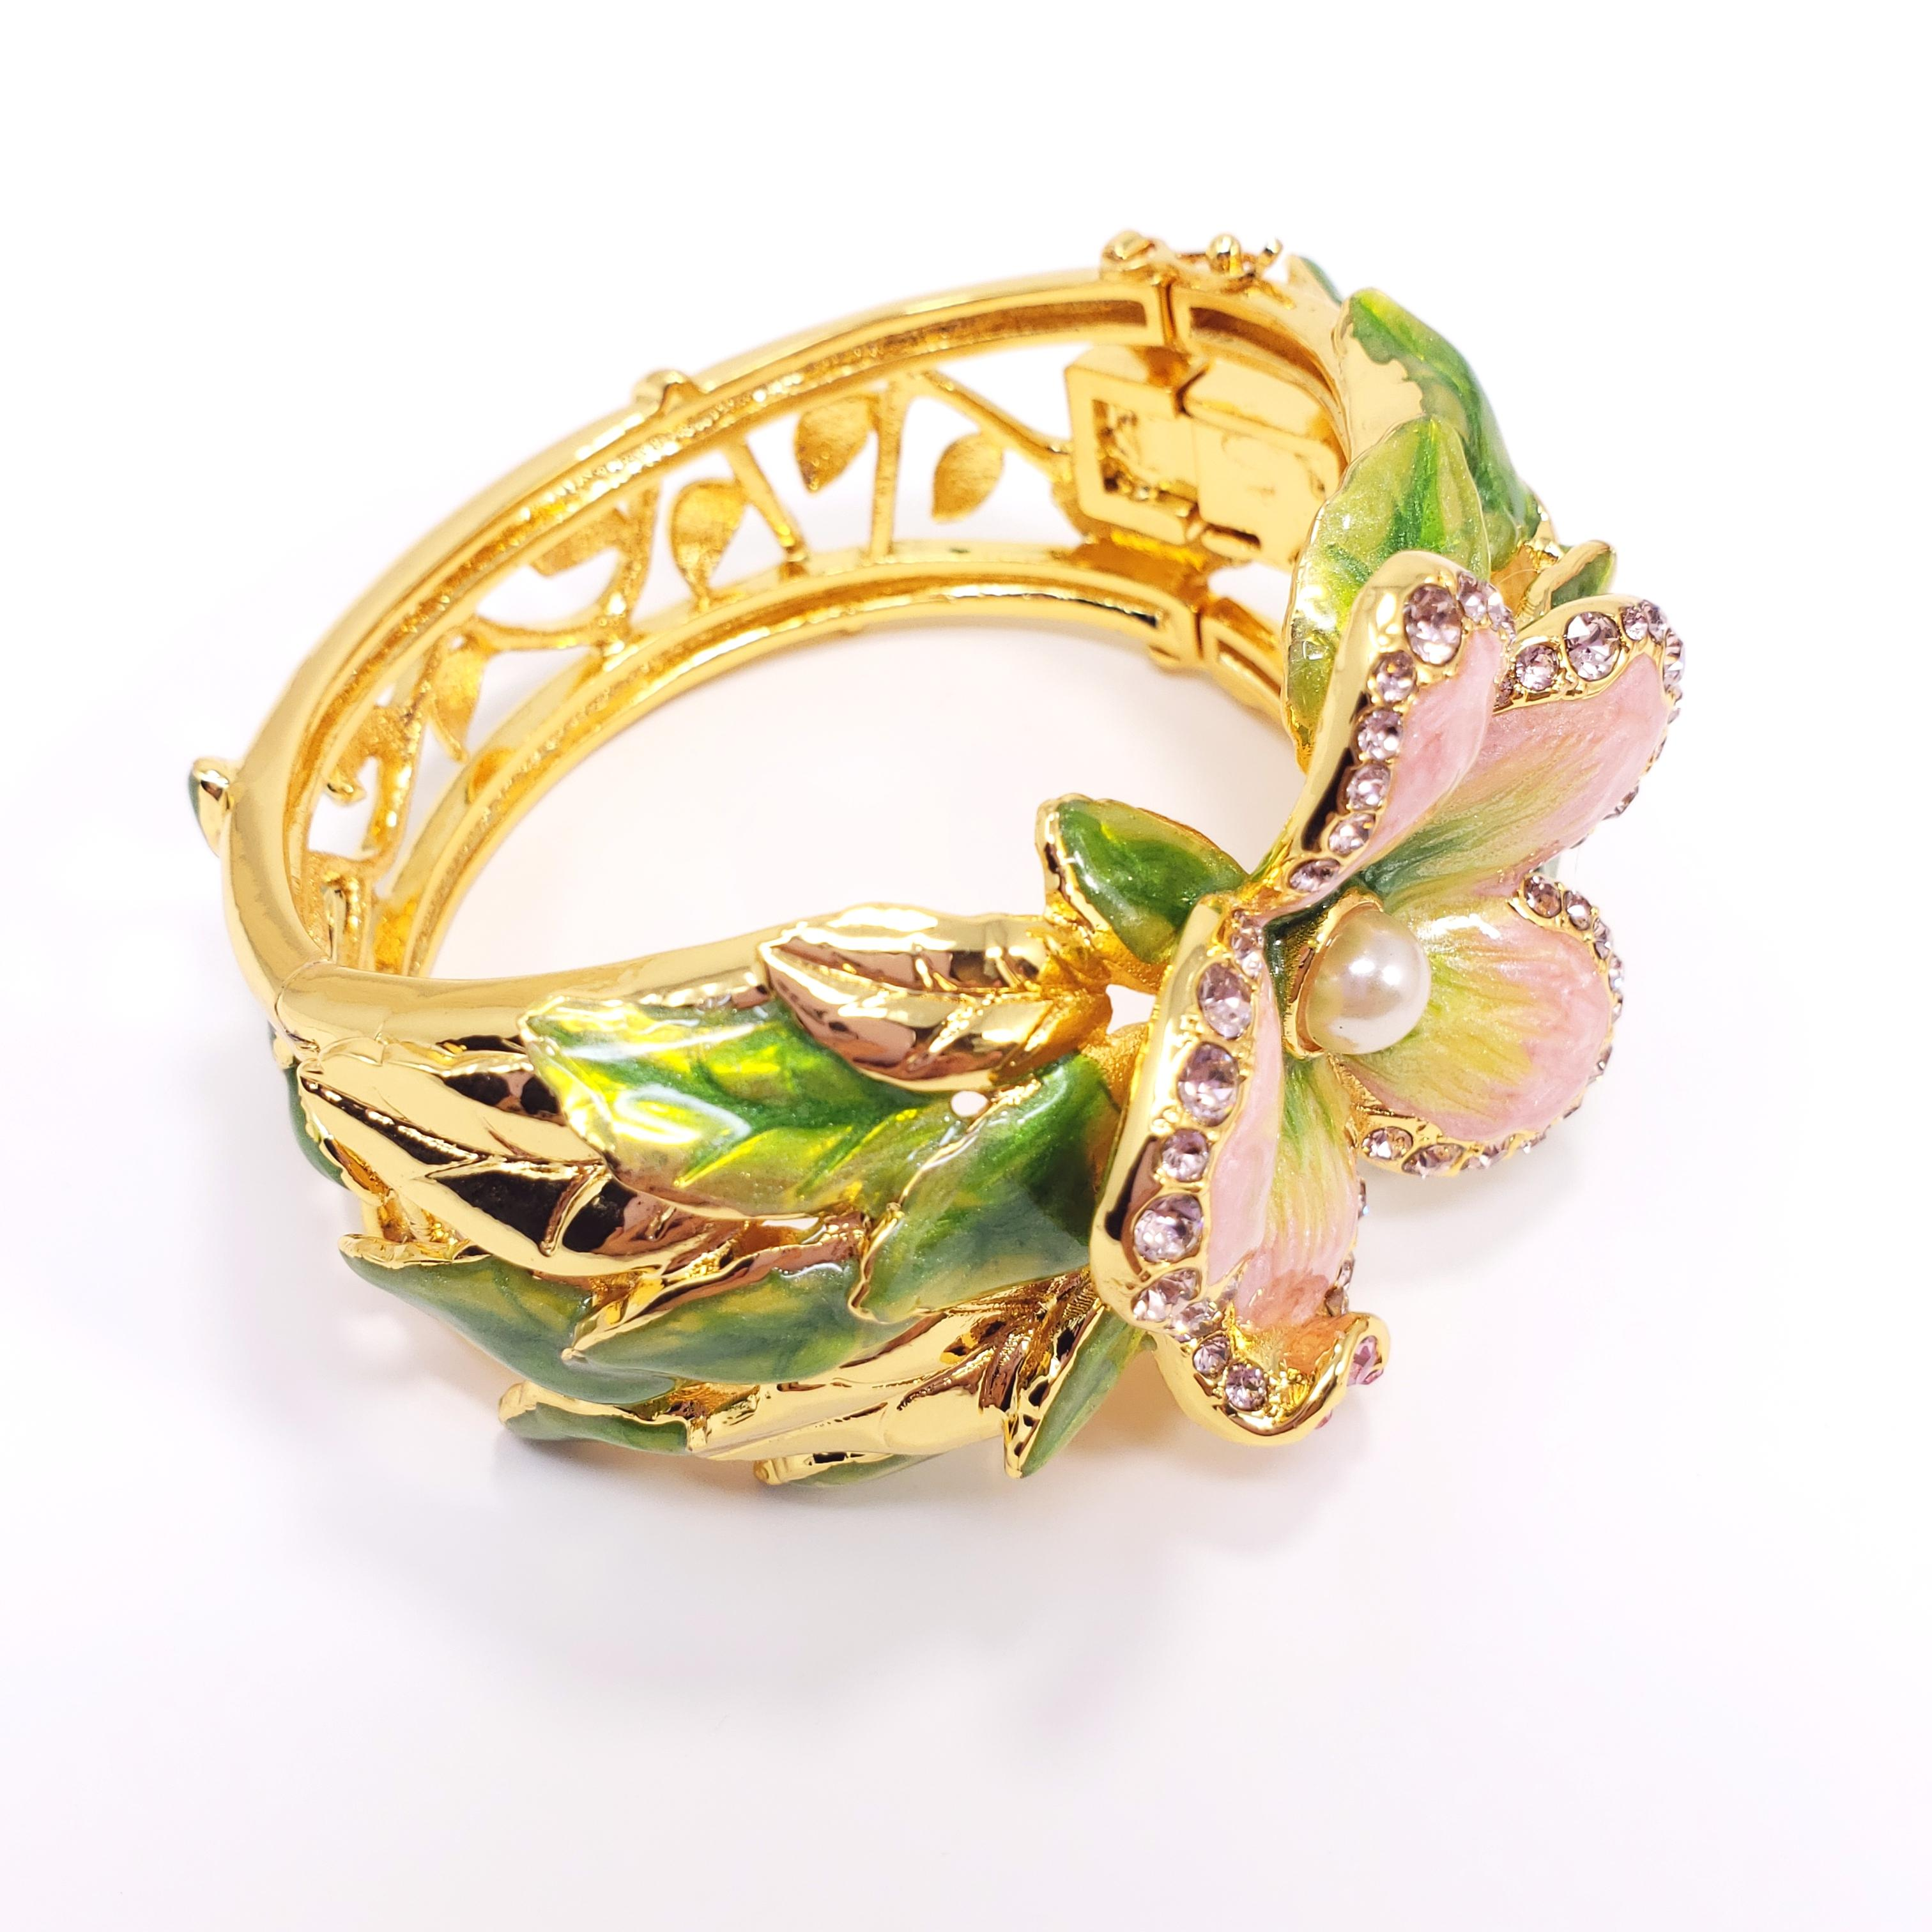 Bracelets Fashion Jewelry Pair Of Signed Enamel Flower Patterns Ornate Hinged Bangles At All Costs